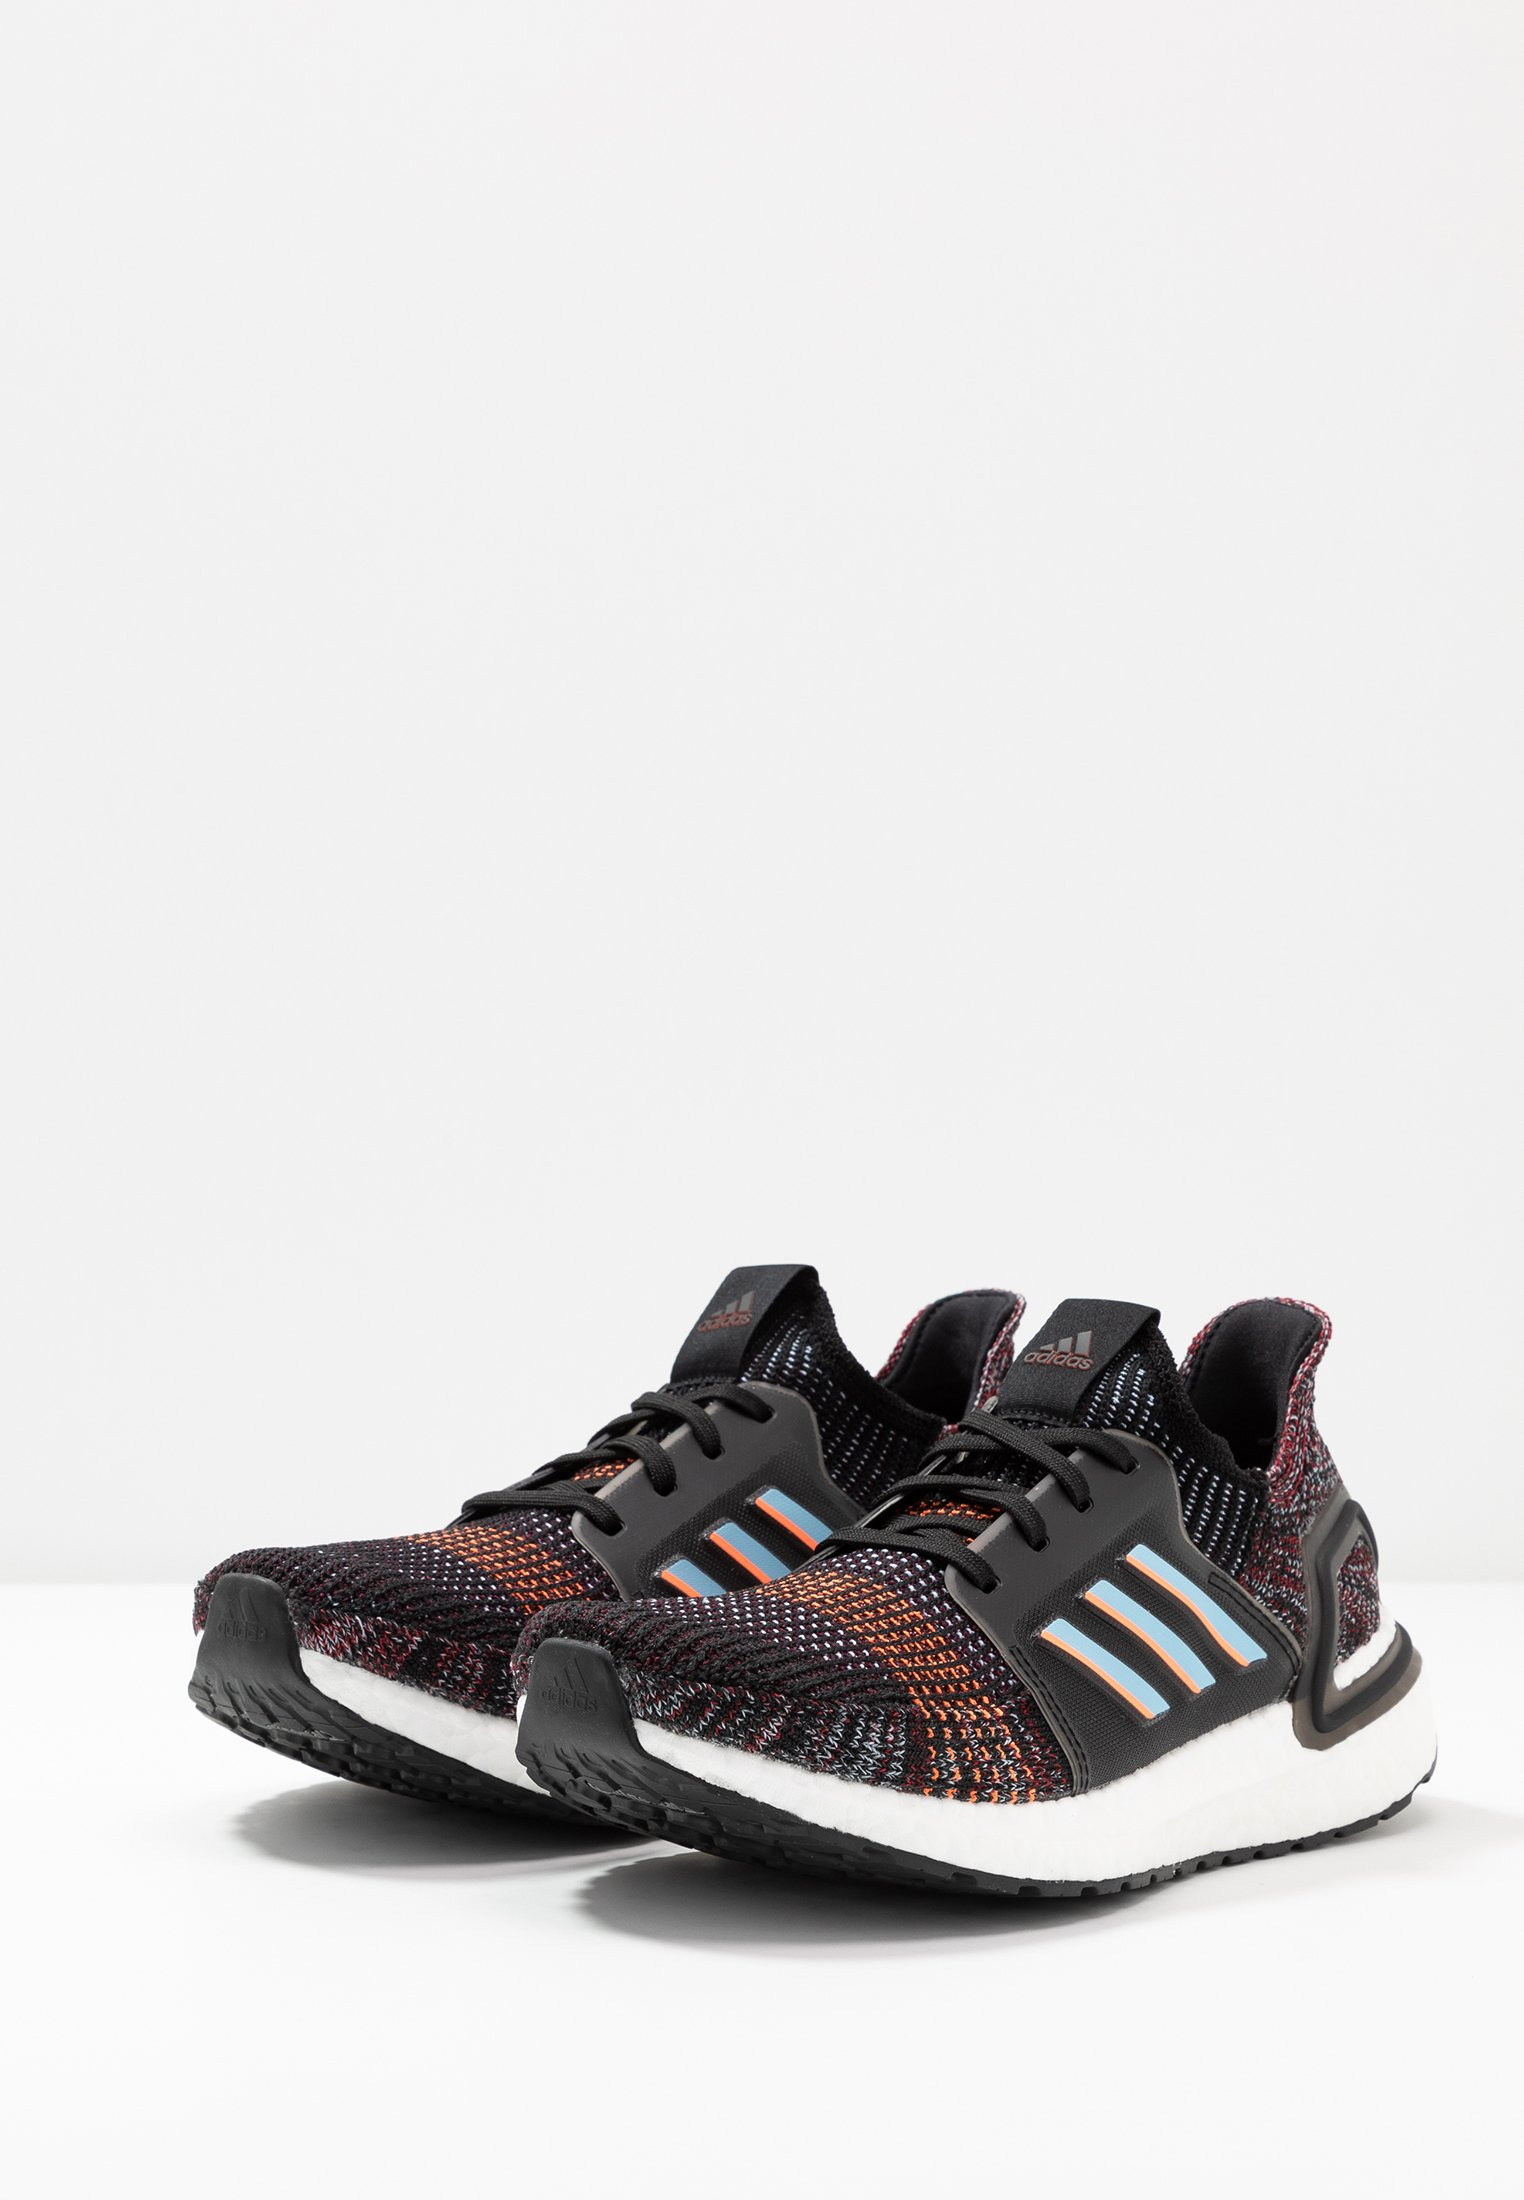 Neutres glow De Ultraboost Black Blue Core Adidas 19Chaussures Running Performance VpMSUz